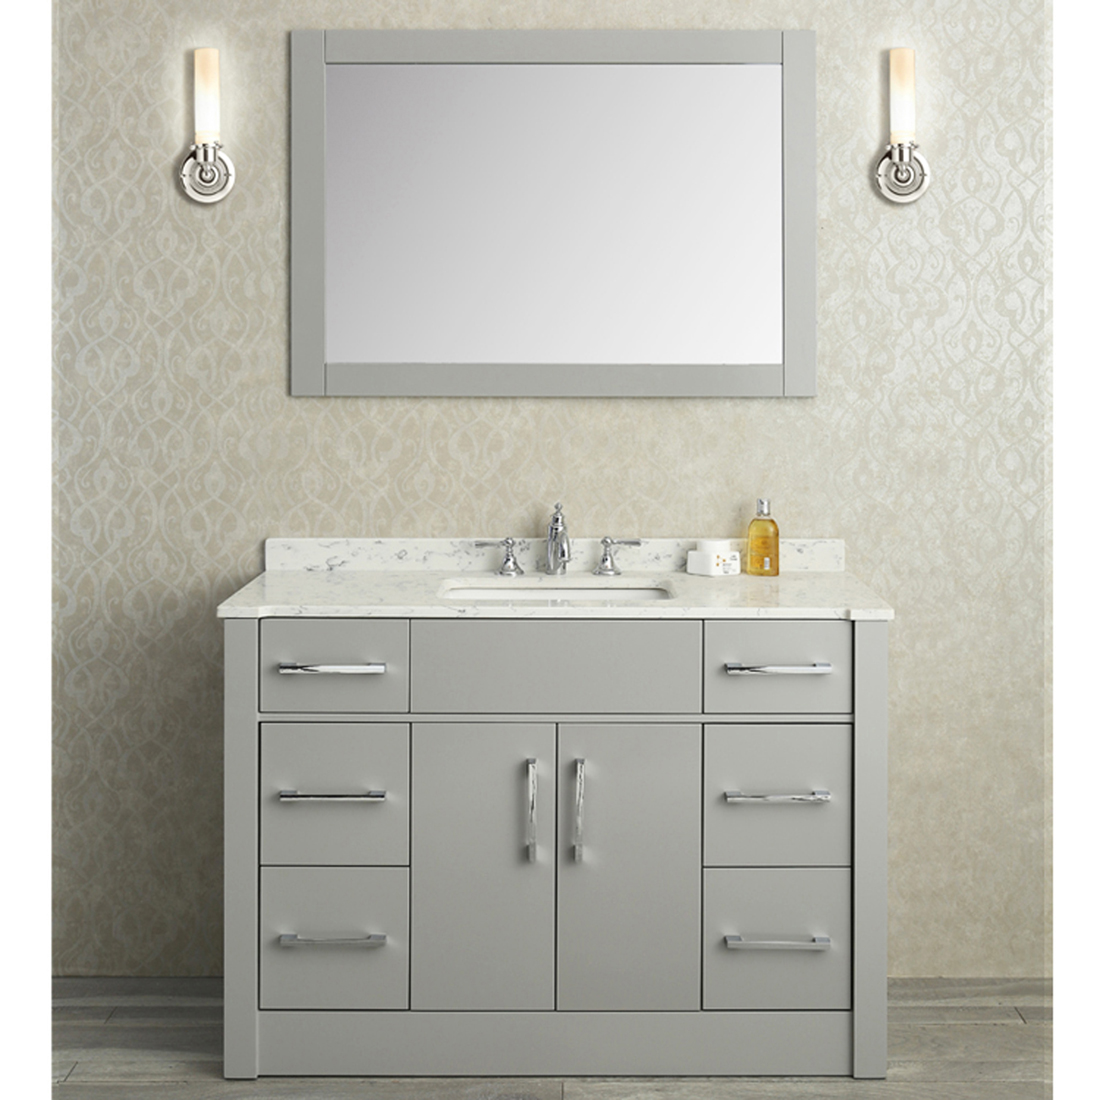 Seacliff by Ariel Radcliff 48 Single Sink Vanity Set in